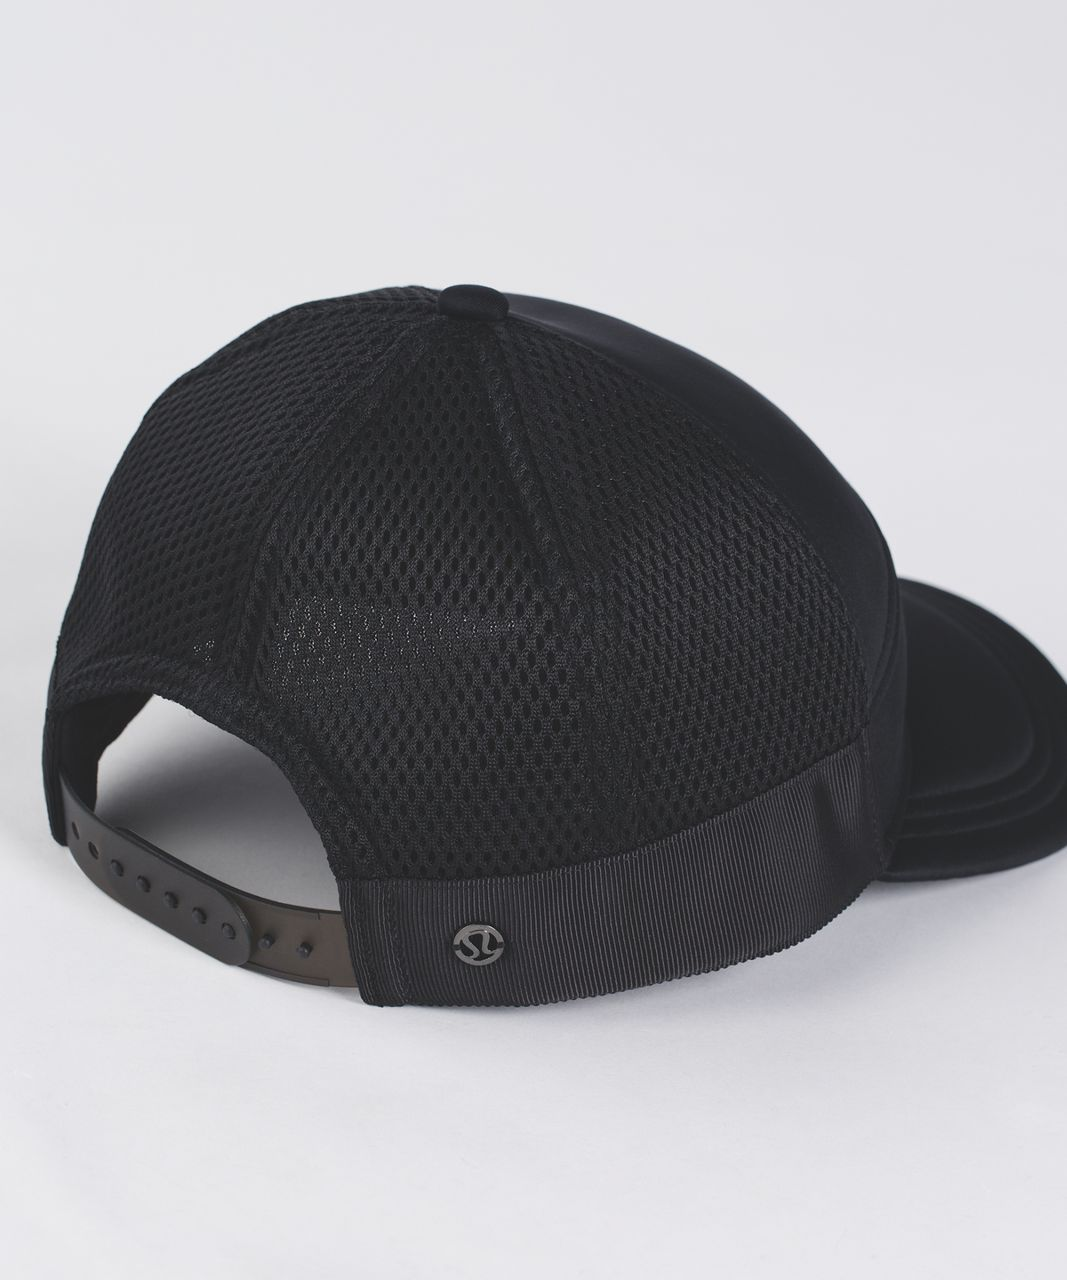 Lululemon Dash & Splash Cap - Black (First Release)